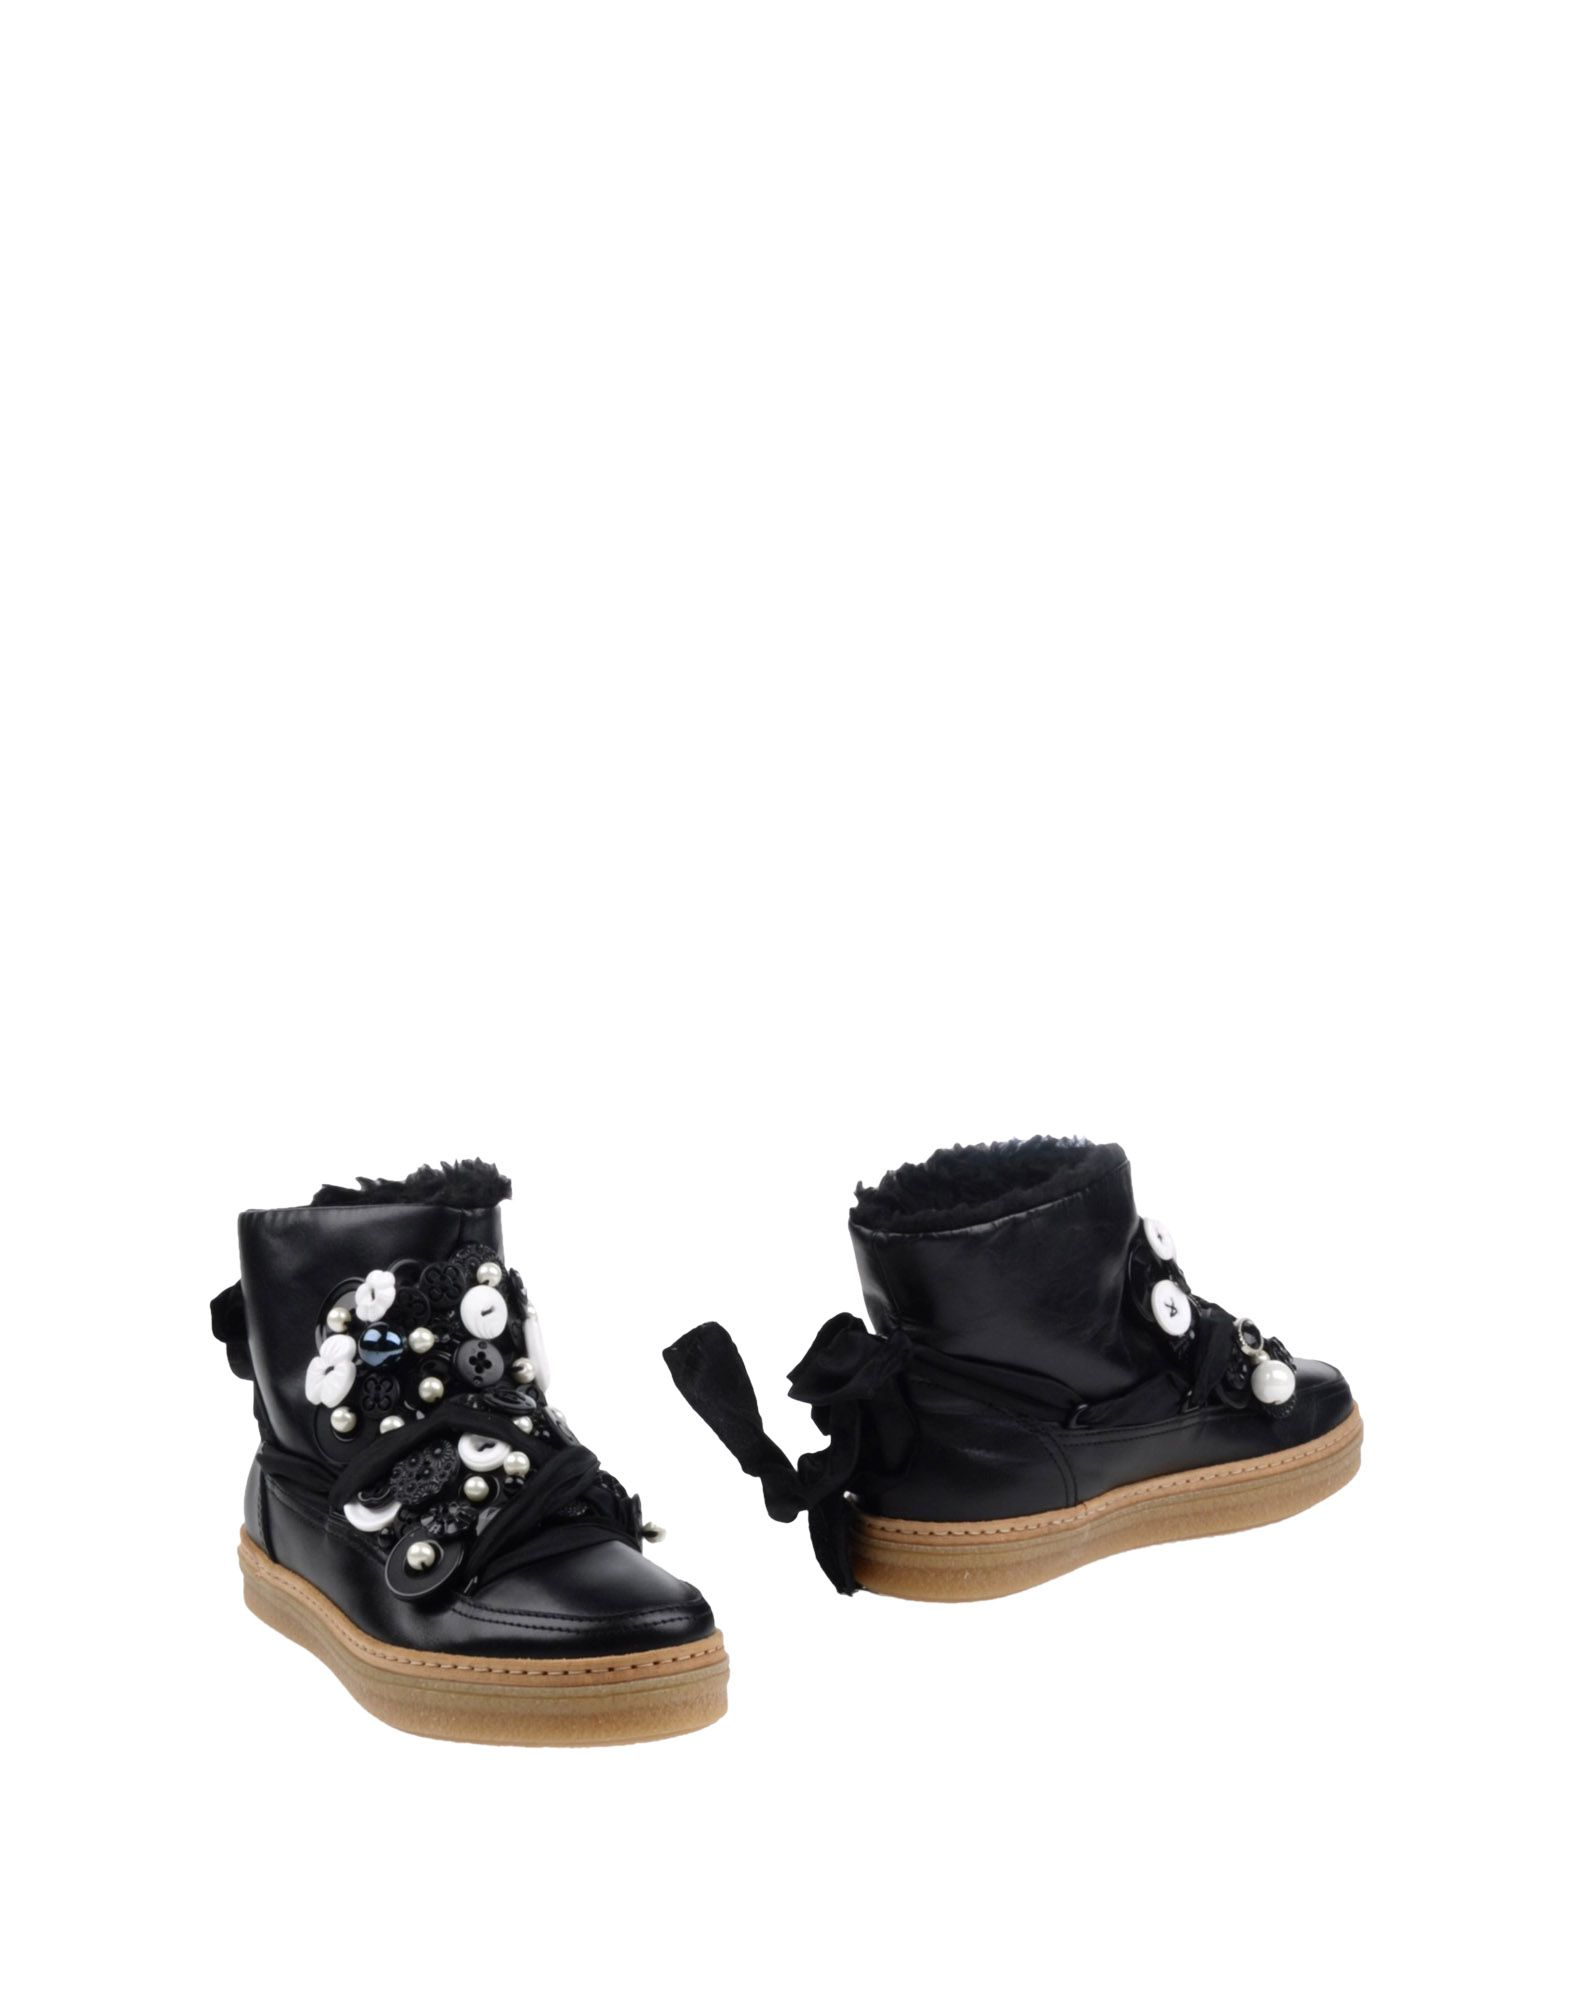 POKEMAOKE Ankle Boot in Black